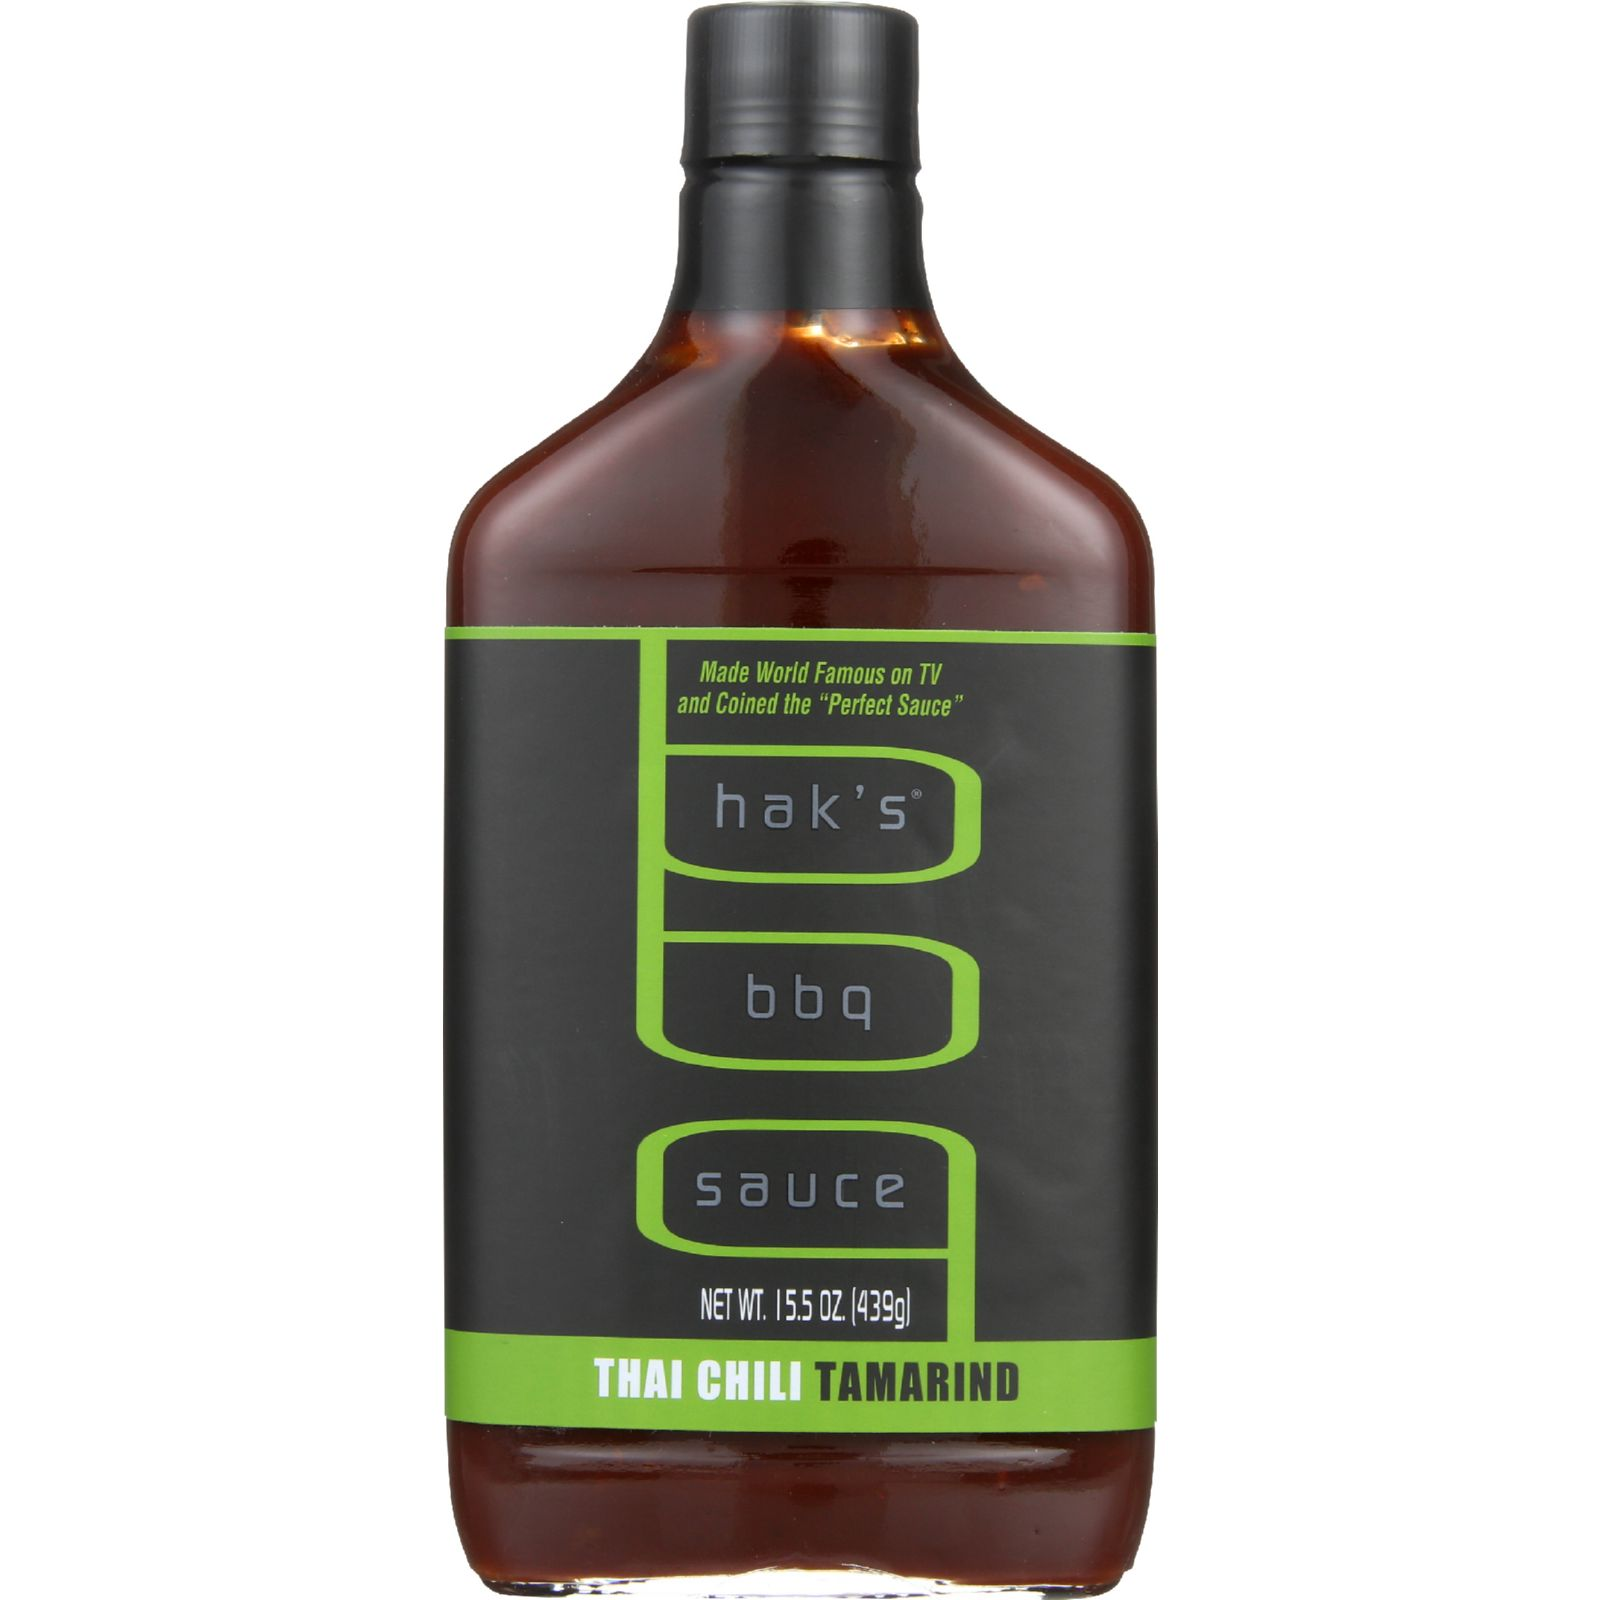 Haks Bbq Sauce - Thai Chile Tamarind - 15.5 Oz - Case Of 6